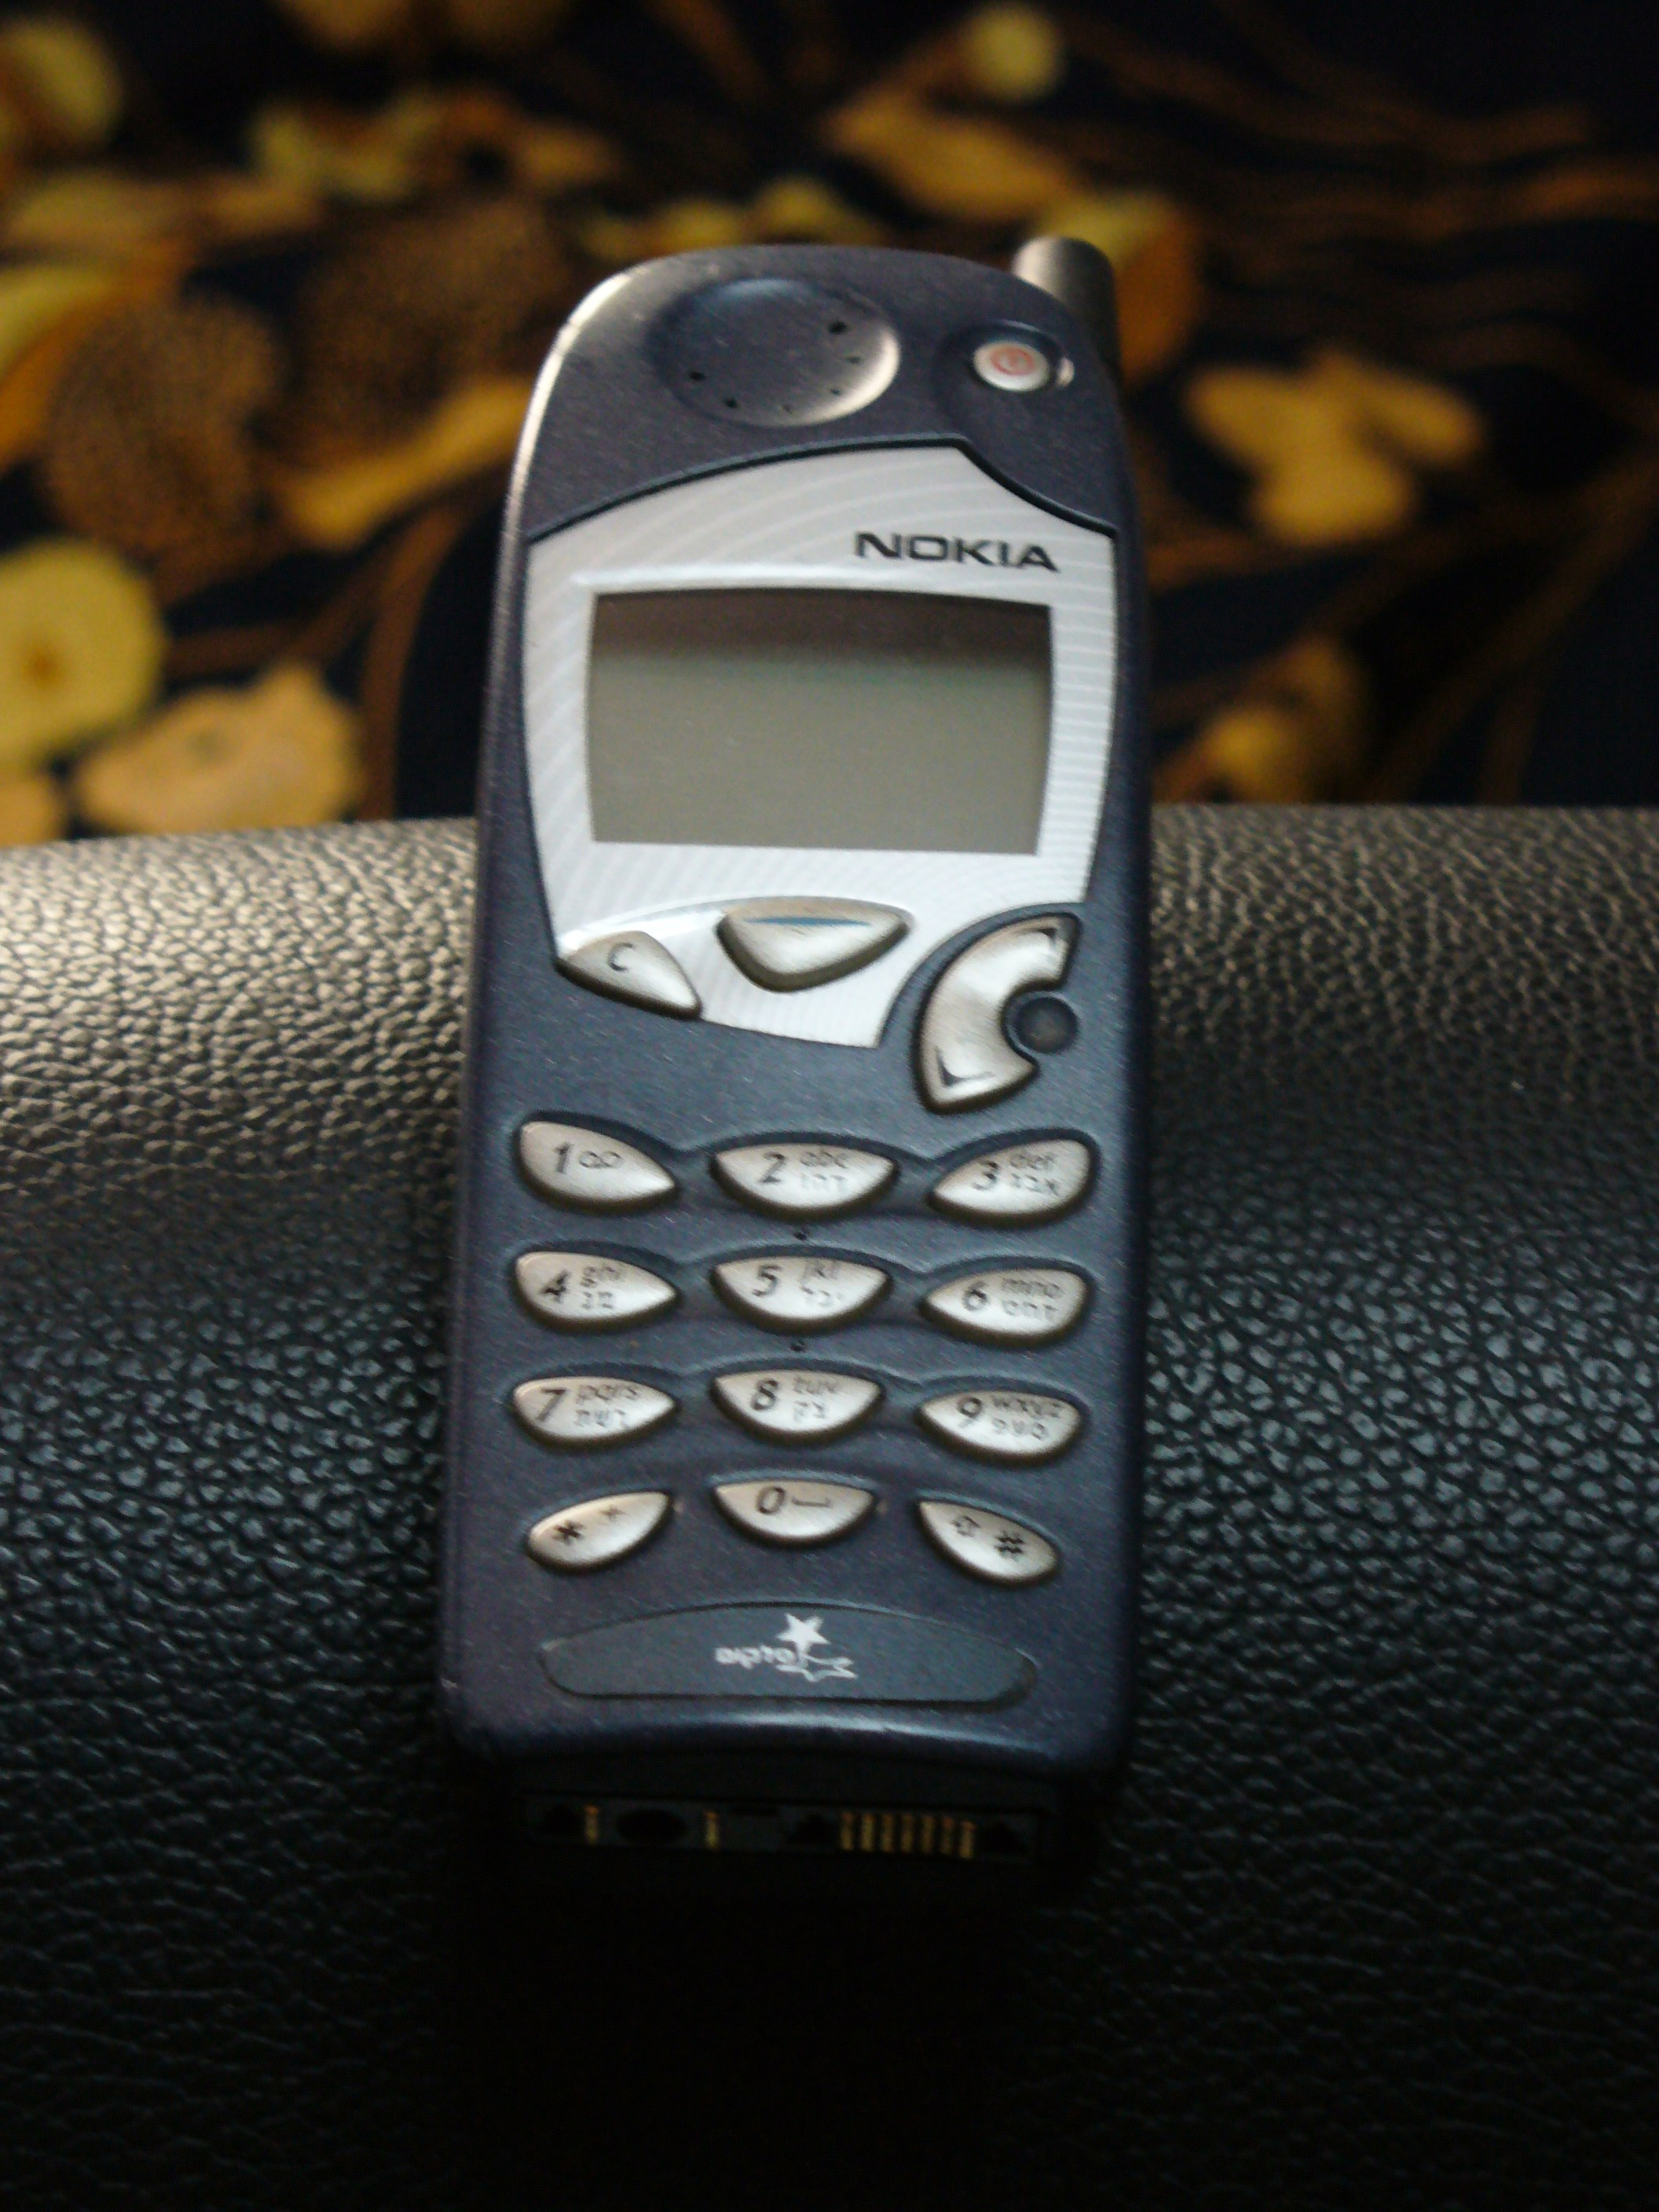 Nokia 5125 Wikipedia File:nokia 5125 Top.jpg